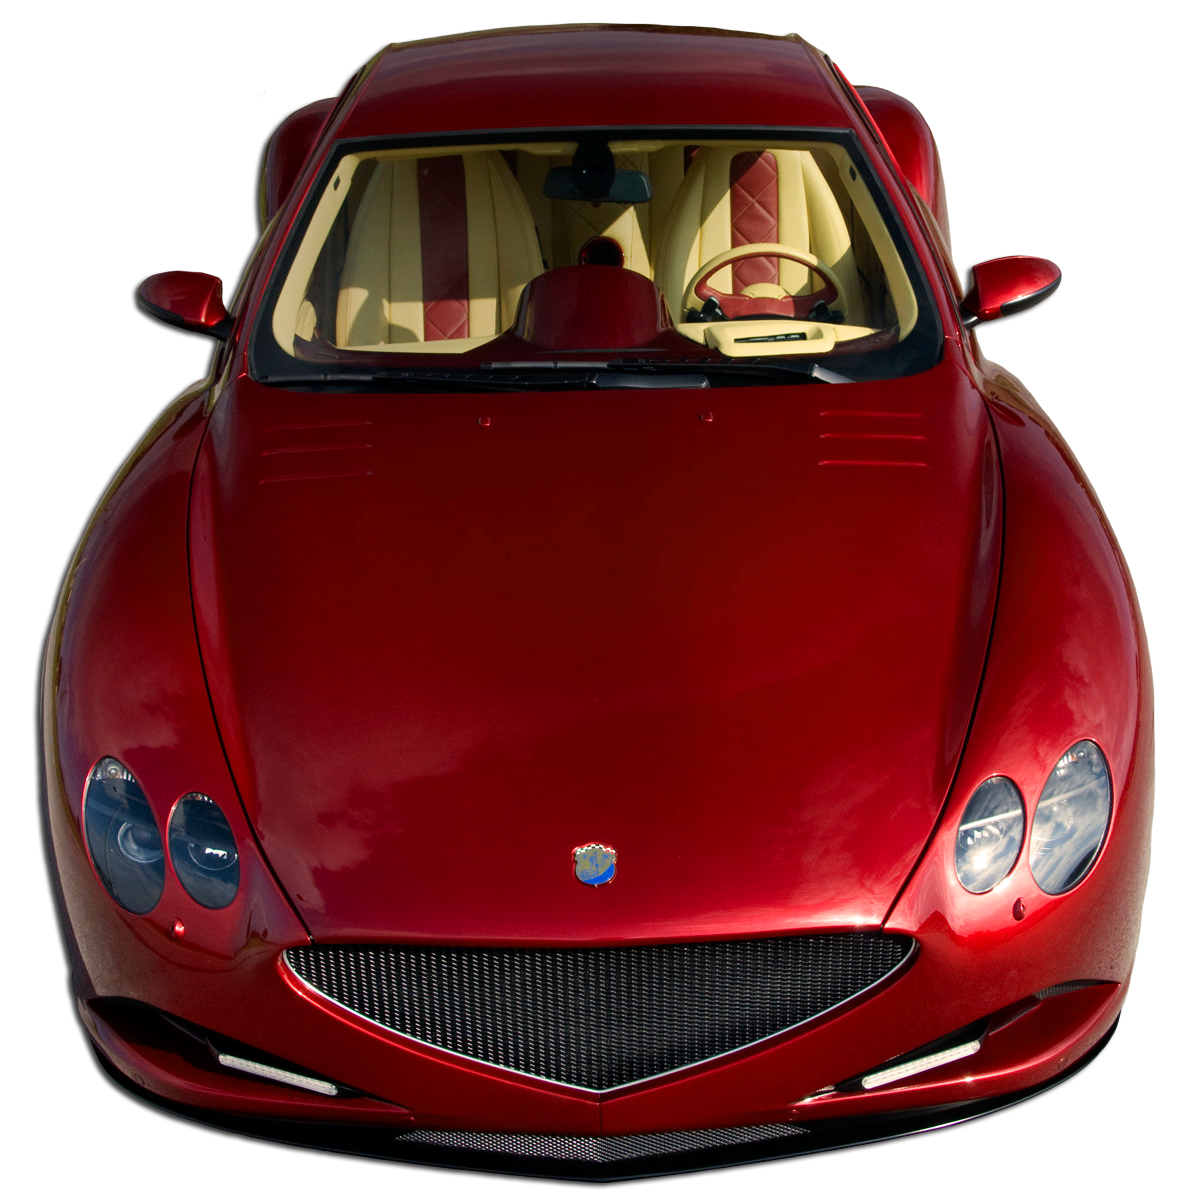 Fast car clipart transparent clipart royalty free download Faralli and Mazzanti Car PNG Clipart - Best WEB Clipart clipart royalty free download